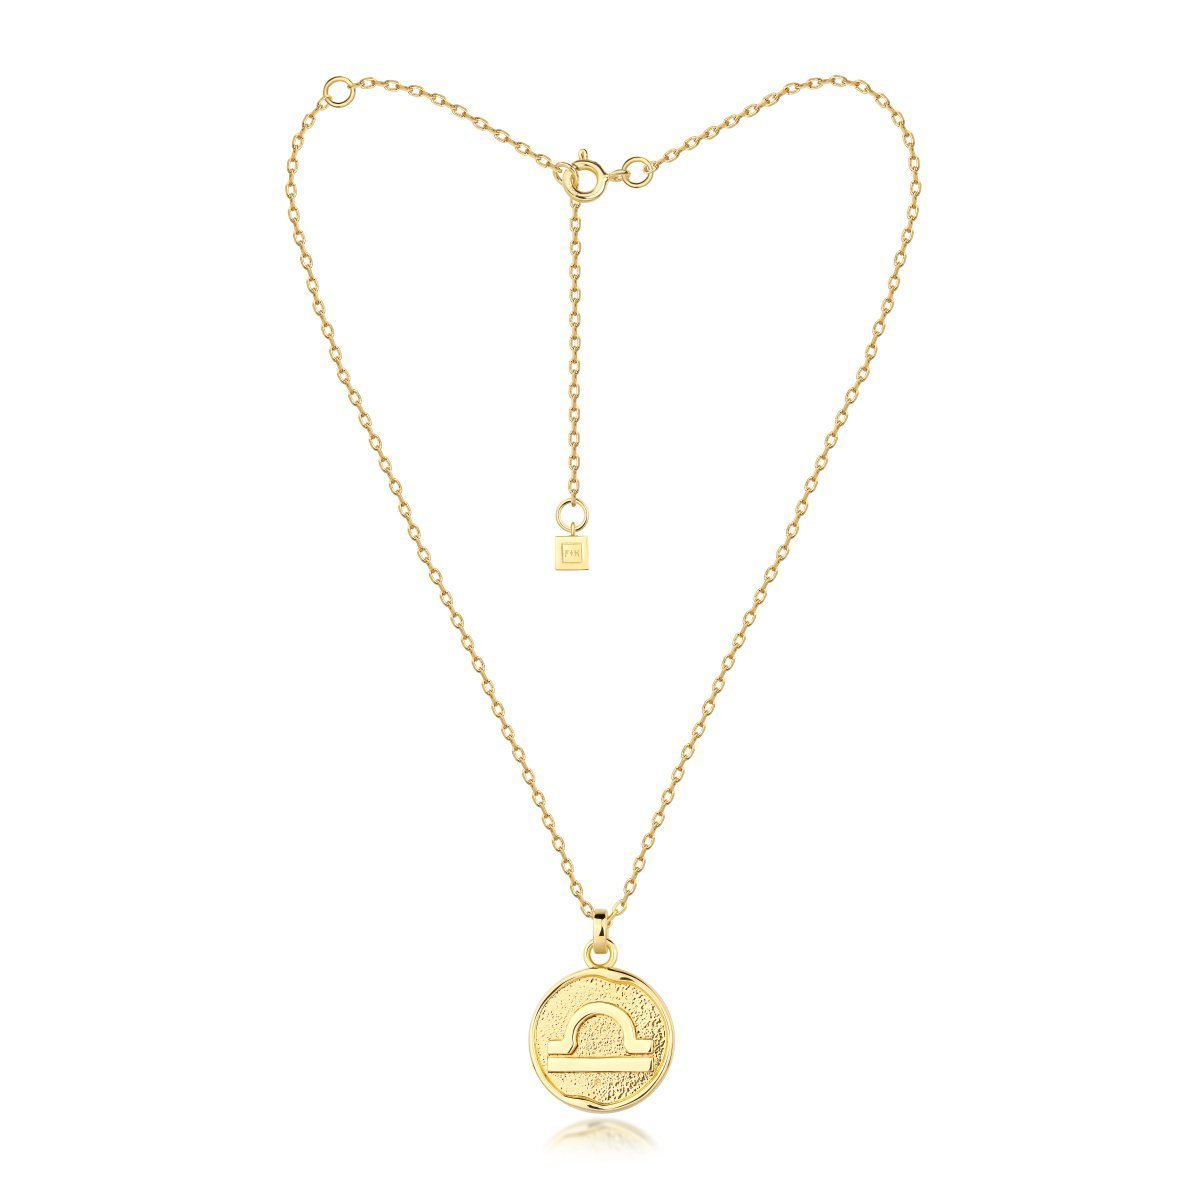 f + h jewellery - libra necklace - gold